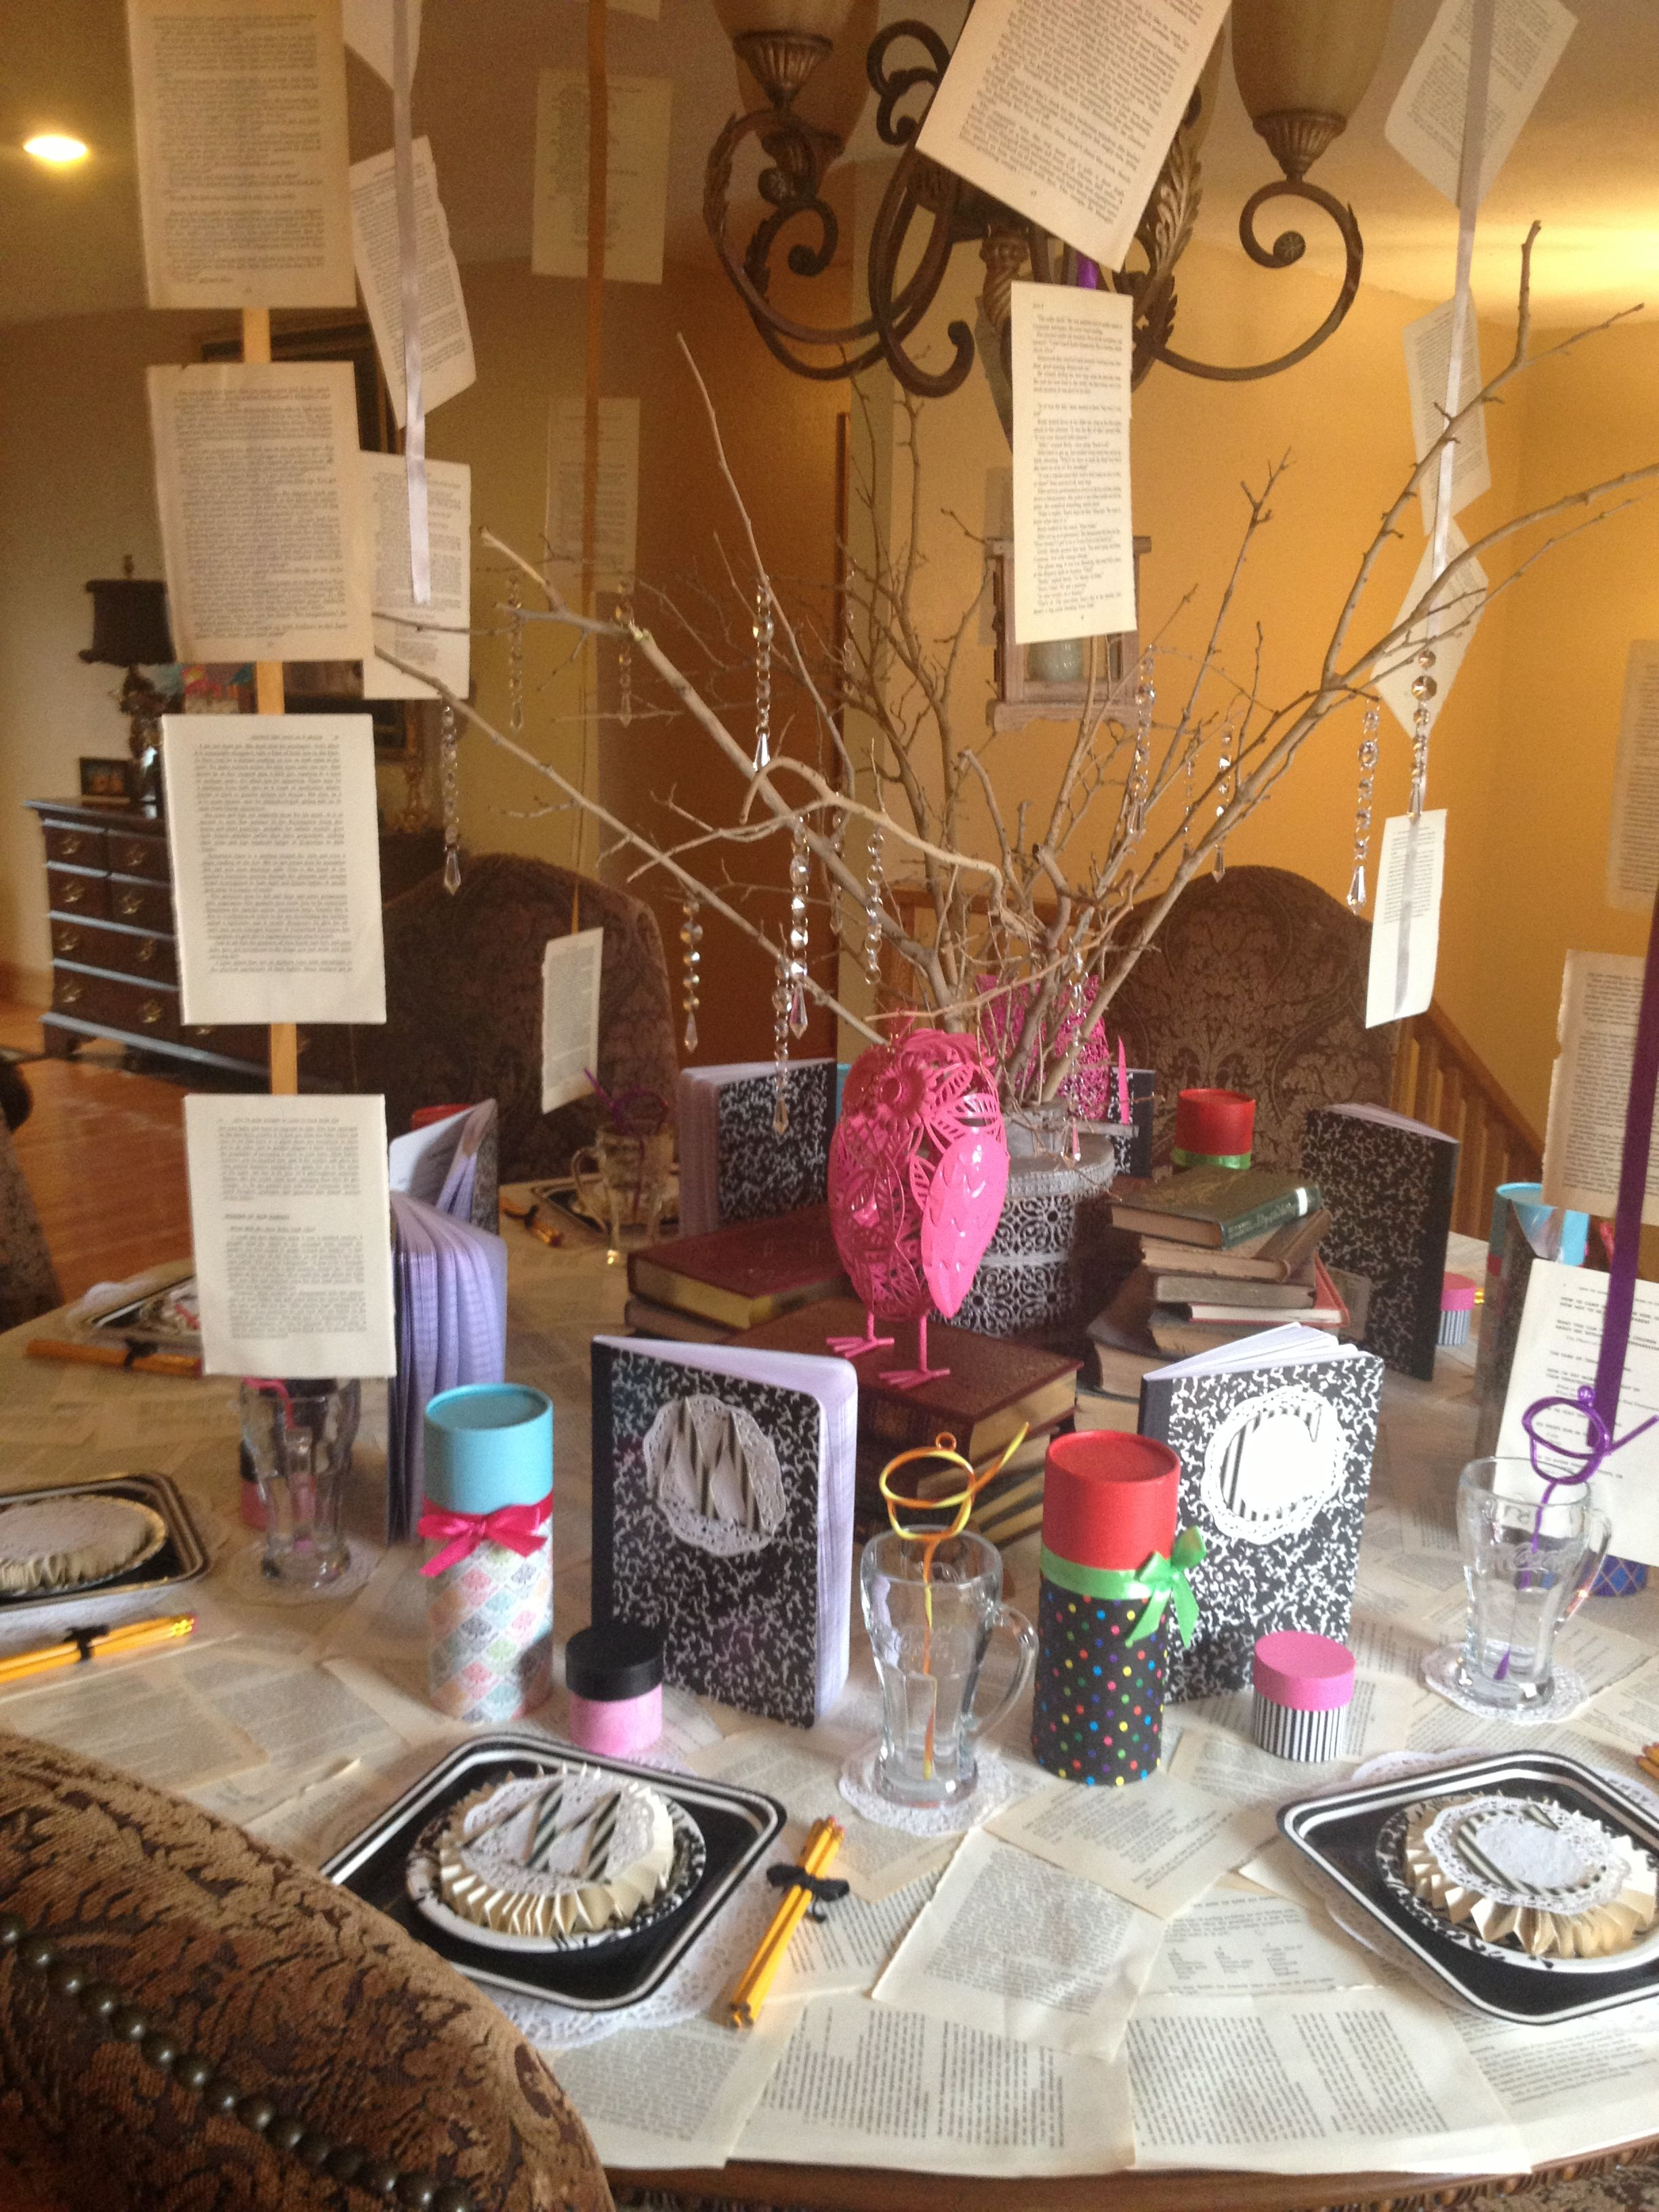 Decorative Ideas For Living Room Small: Clever Decorations For A Book-themed Party. Many Of These